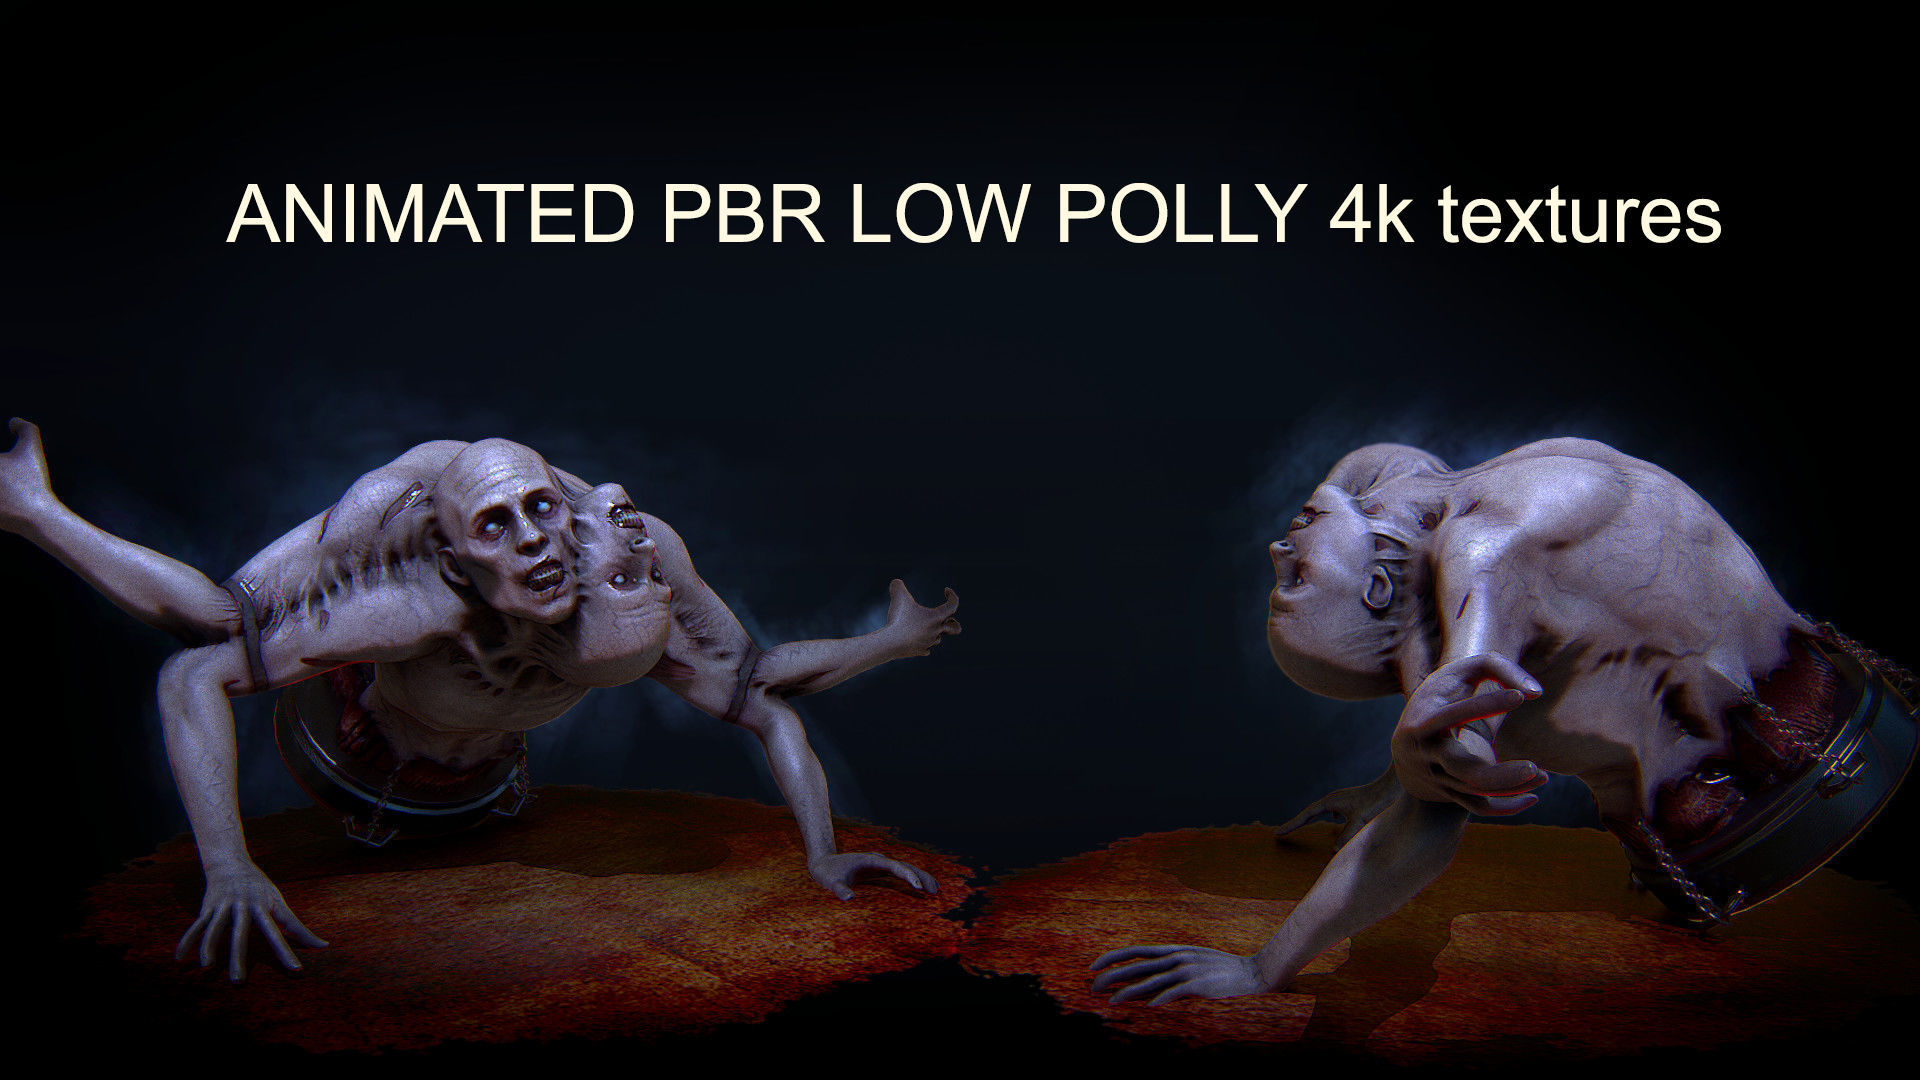 DUO HORROR PBR ANIMATED